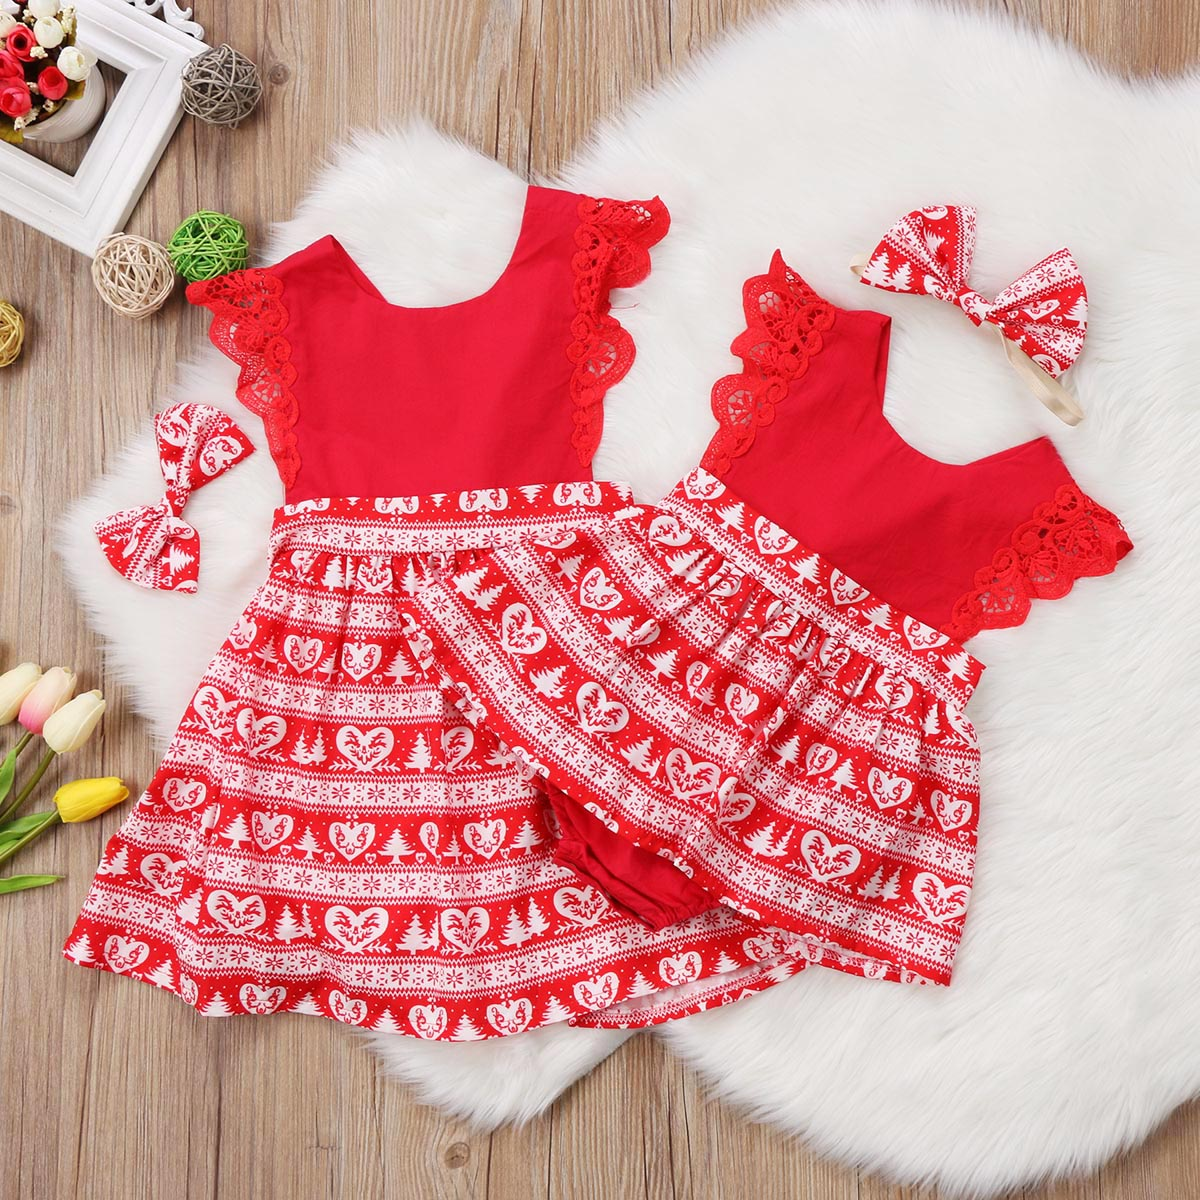 Christmas Baby Girls Romper Dresses Kids Red Yellow Xmas Lace Ruffled Romper Dress Party Dresses Headband Outfits Clothes 0-6Y fashion newborn baby girls christmas ruffle red lace romper dress sister princess kids xmas party dresses cotton costume romper